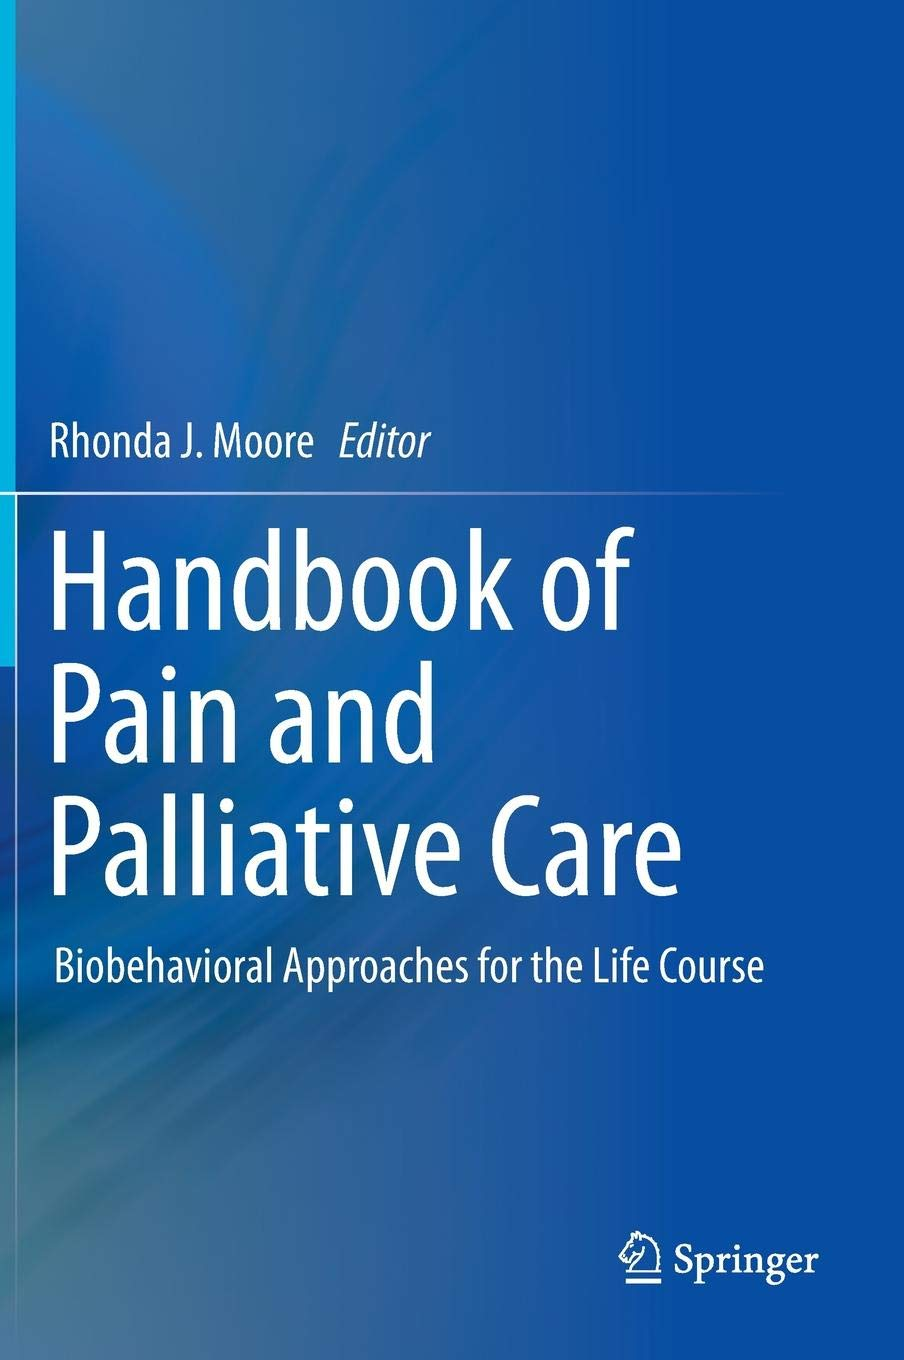 Handbook of Pain and Palliative Care: Biobehavioral Approaches for the Life Course